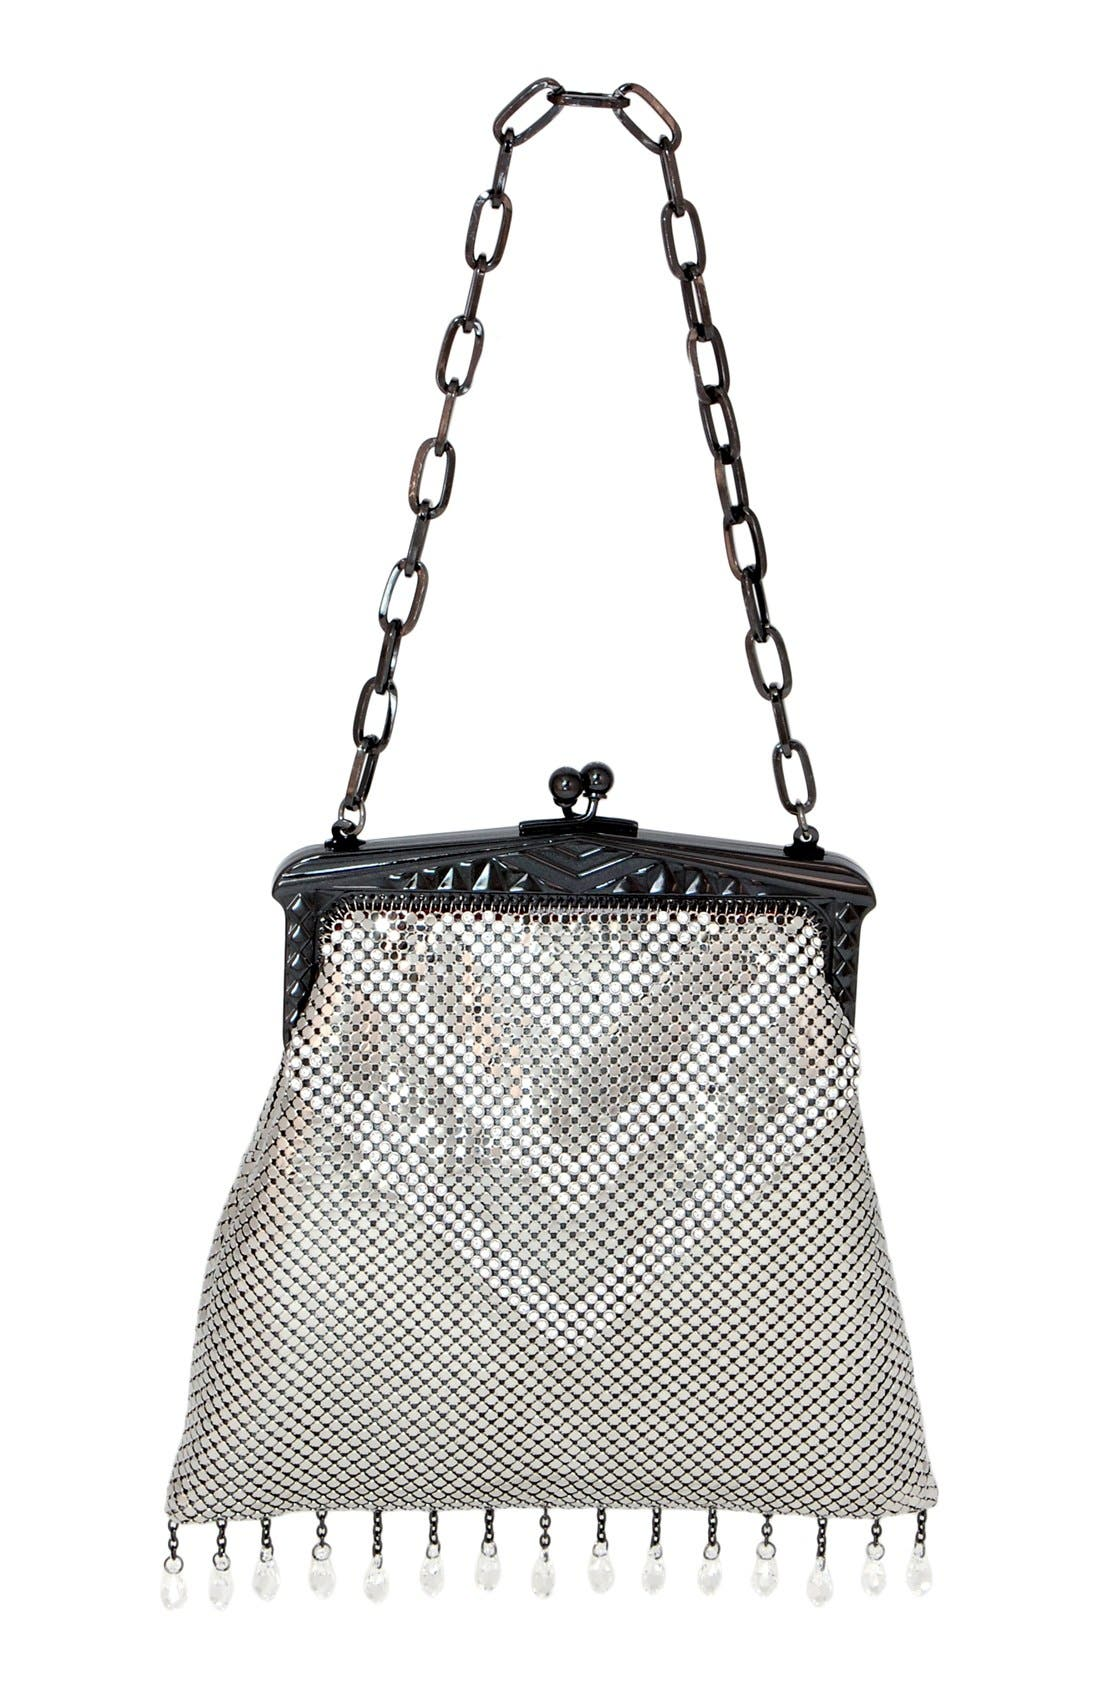 WHITING & DAVIS Heritage - Deco Mesh Clutch